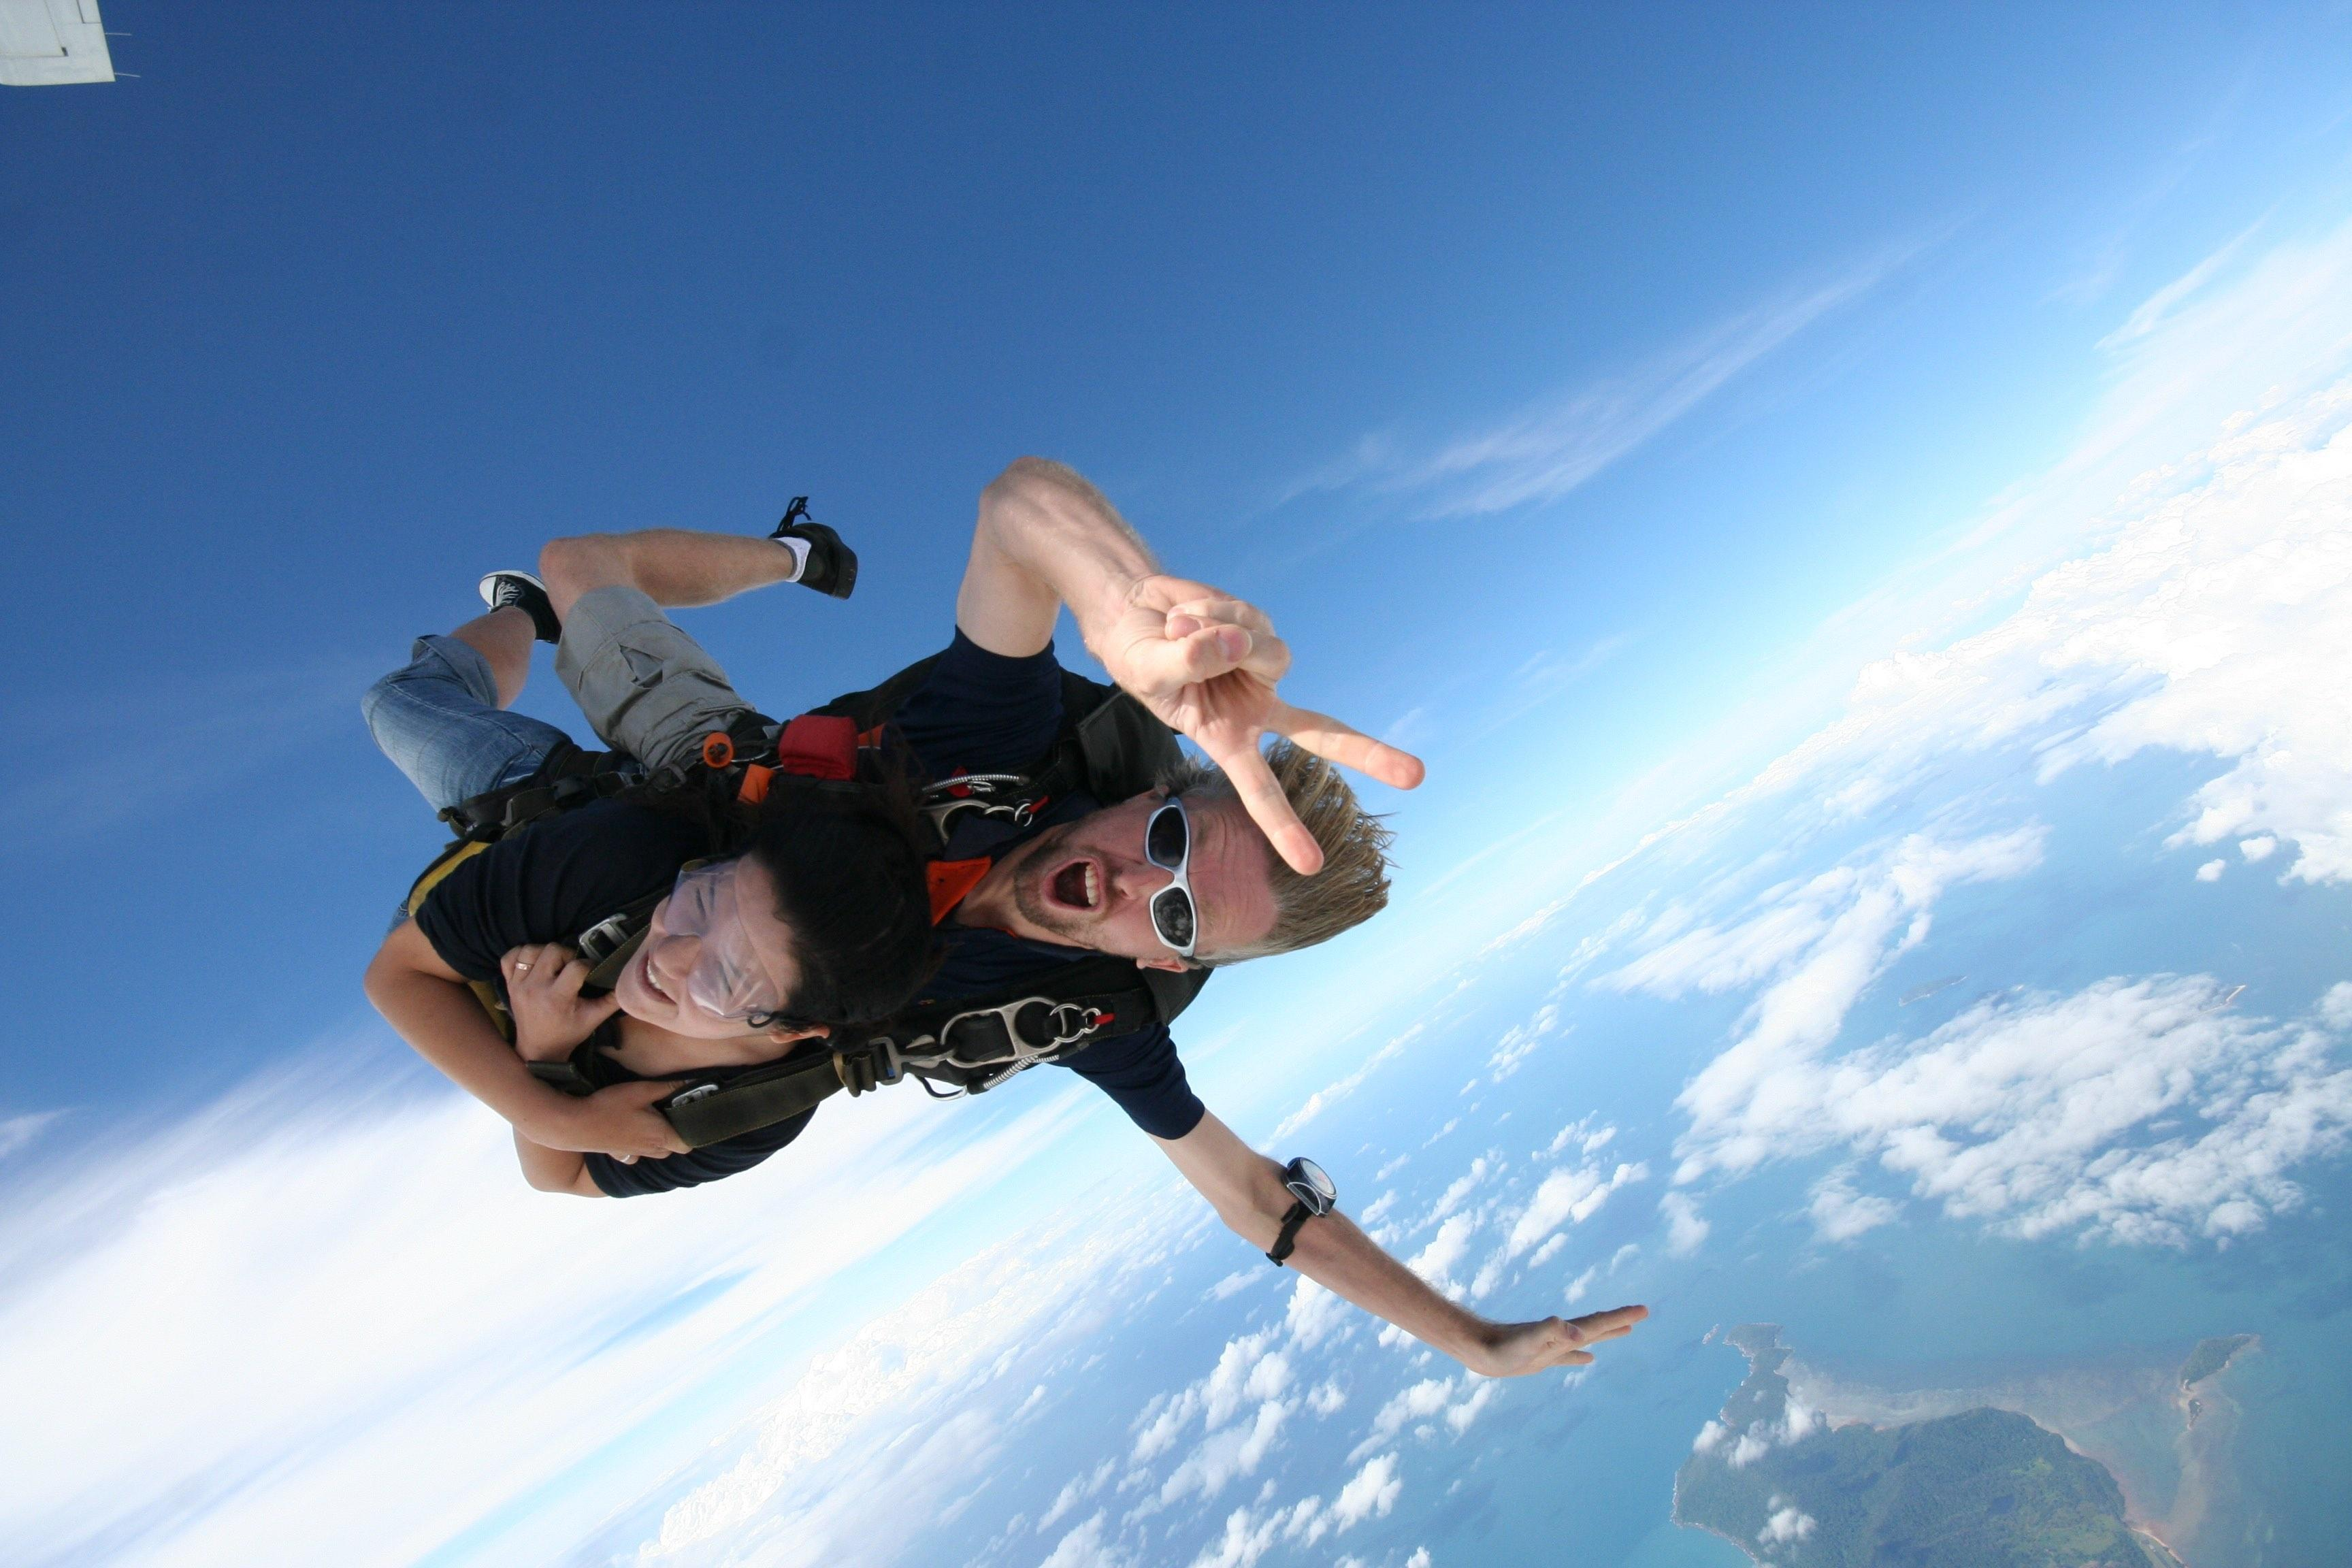 Melbourne Yarra Valley Skydiving Experience